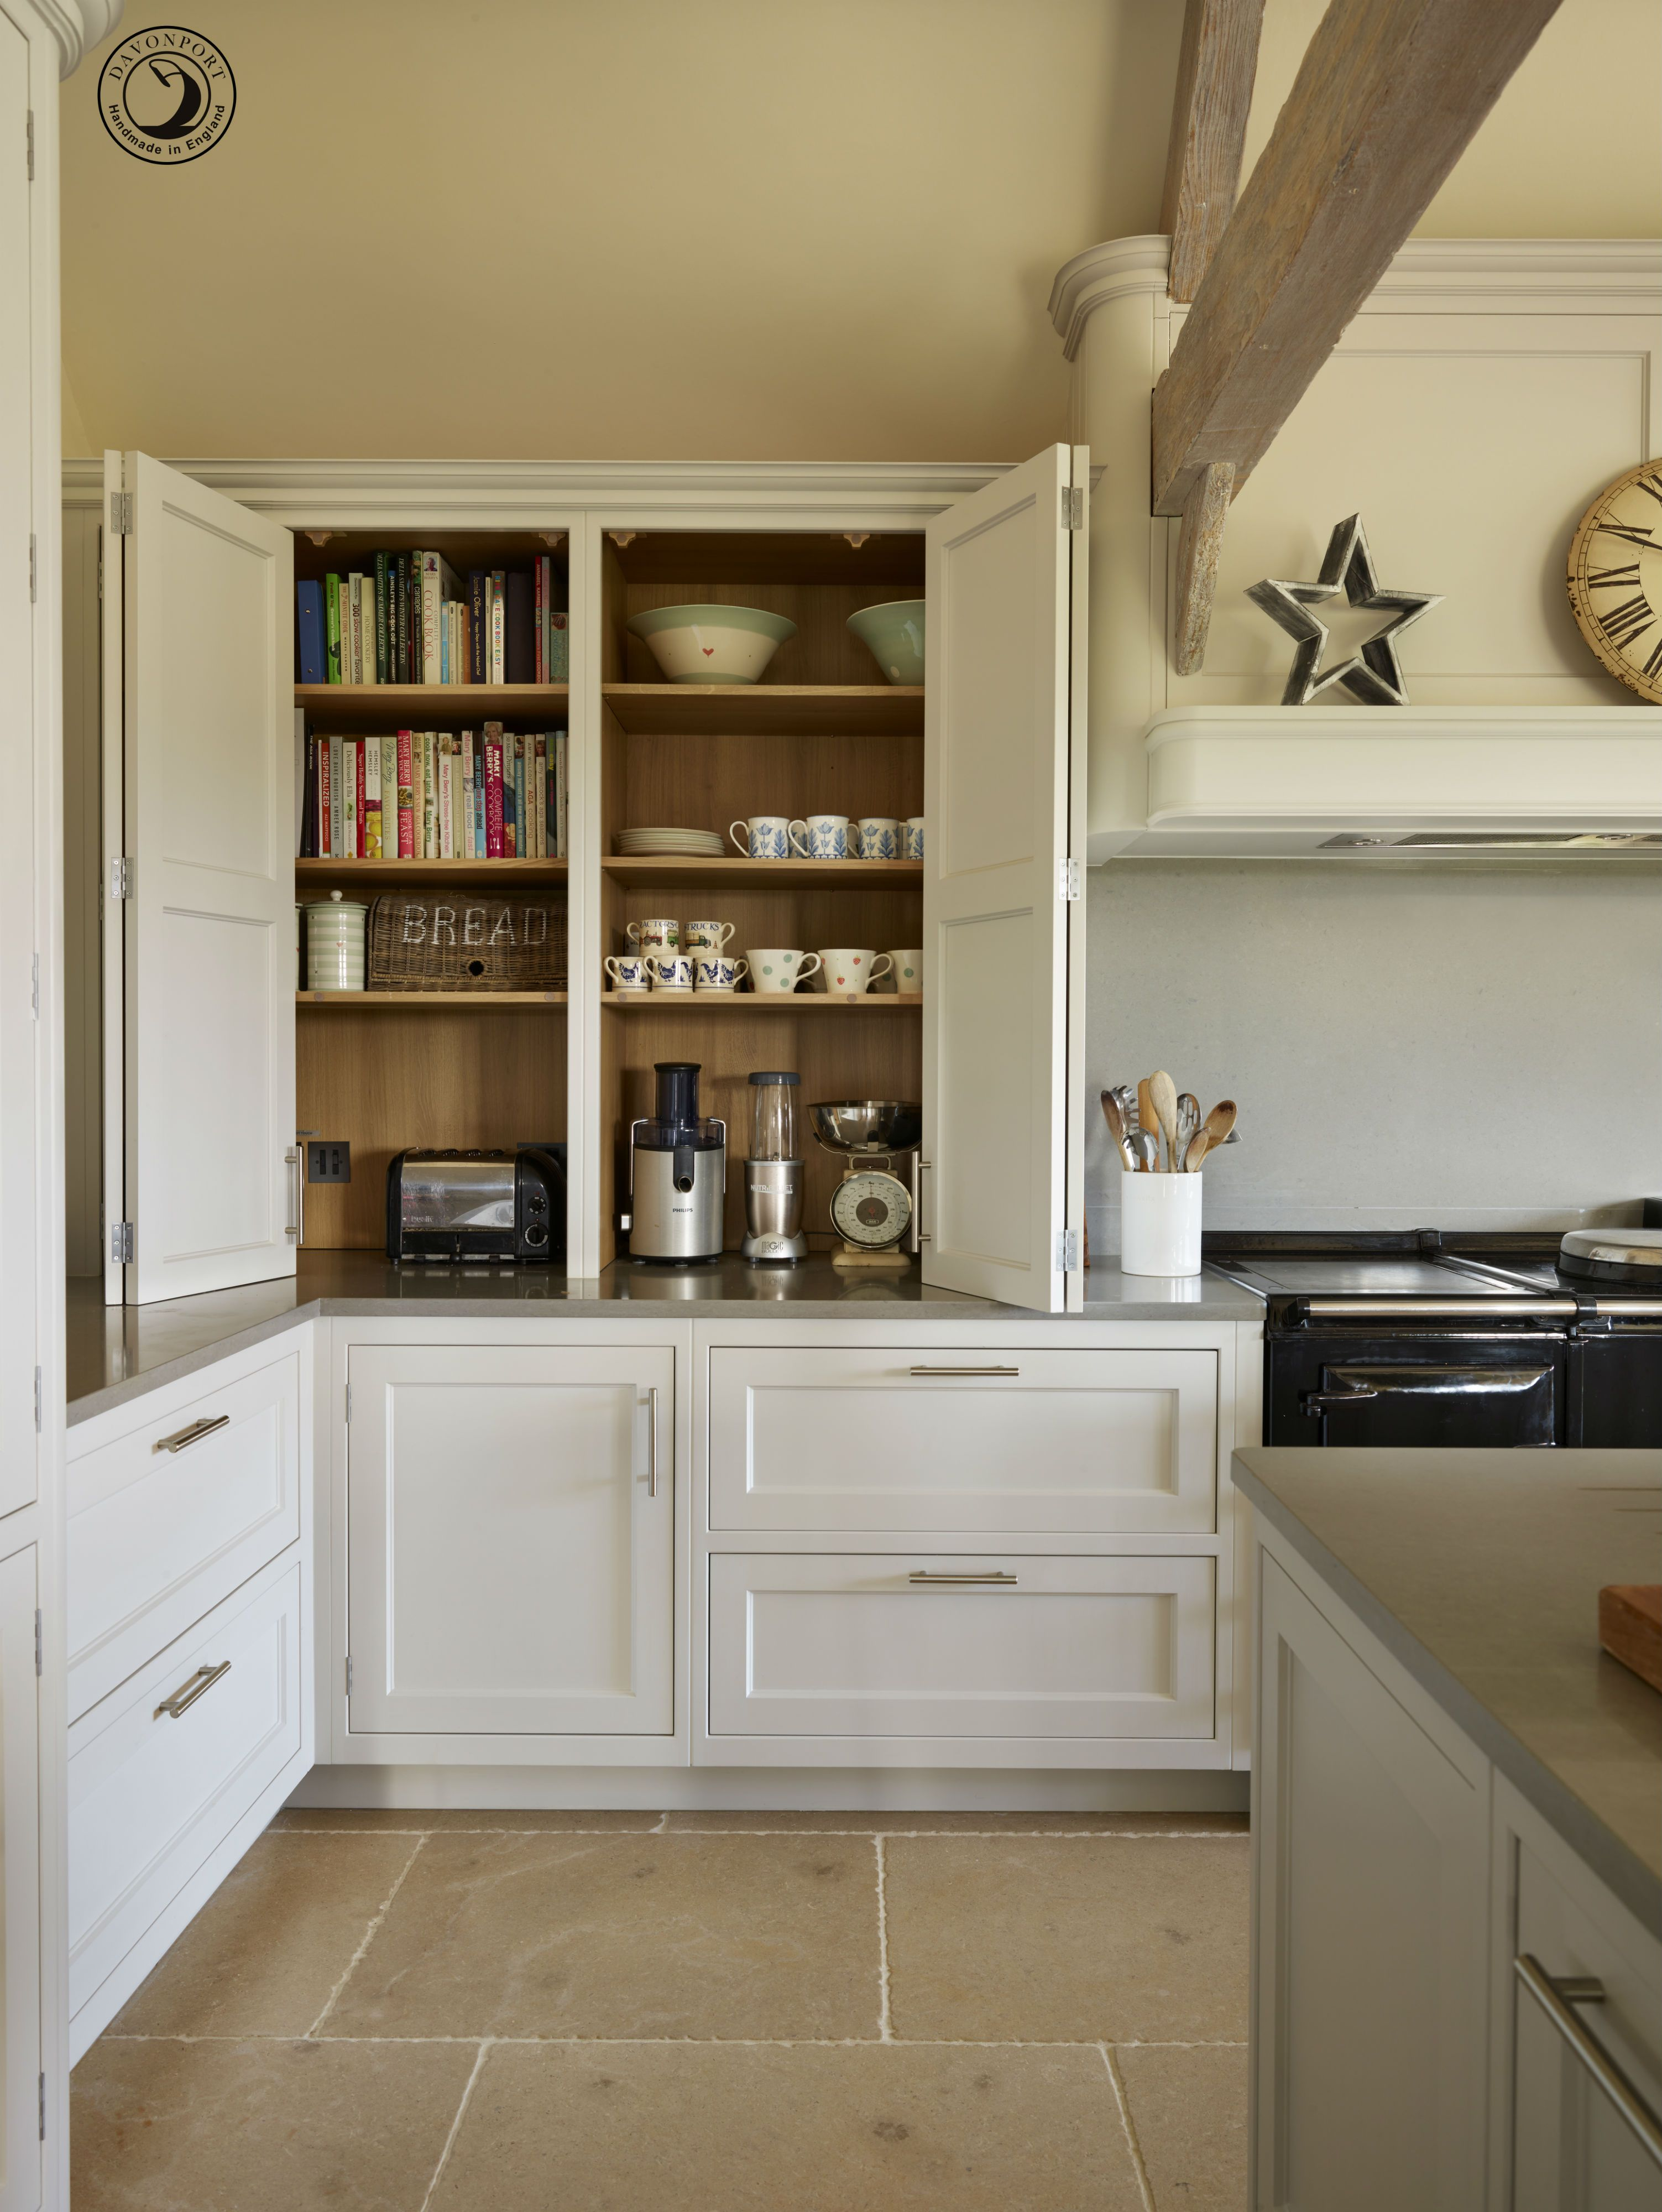 Our Clients Were Keen To Incorporate Enough Storage To Avoid Having Clutter On T Kitchen Cabinetry Design Latest Kitchen Cabinet Design Country Kitchen Designs